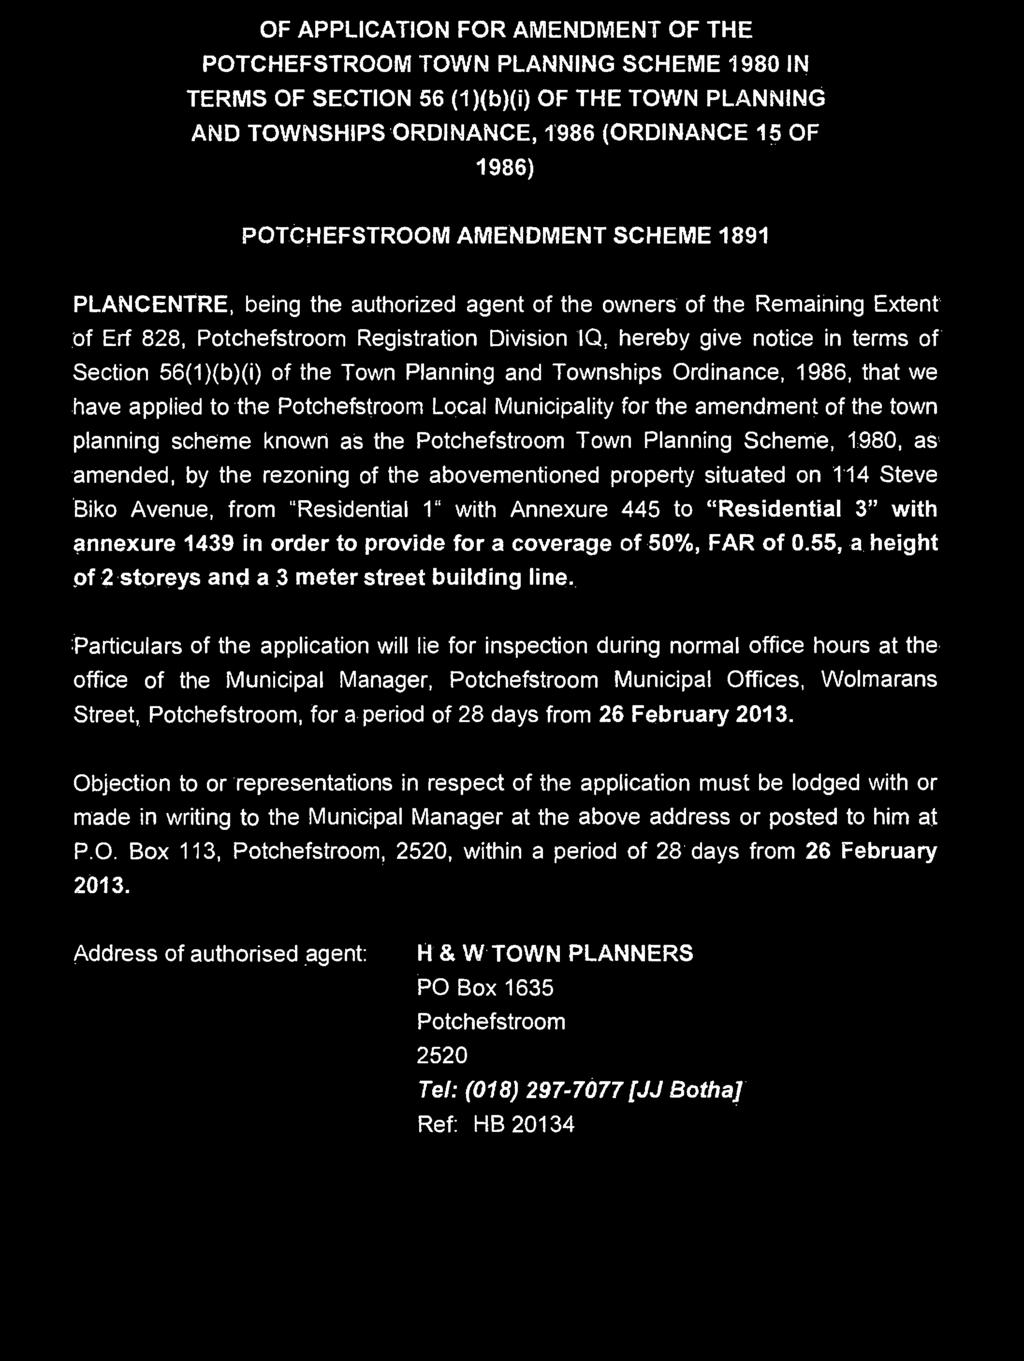 15 OF 1986) POTCHEFSTROOM AMENDMENT SCHEME 1891 PLANCENTRE, being the authorized agent of the owners of the Remaining Extent of Erf 828, Potchefstroom Registration Division IQ, hereby give notice in